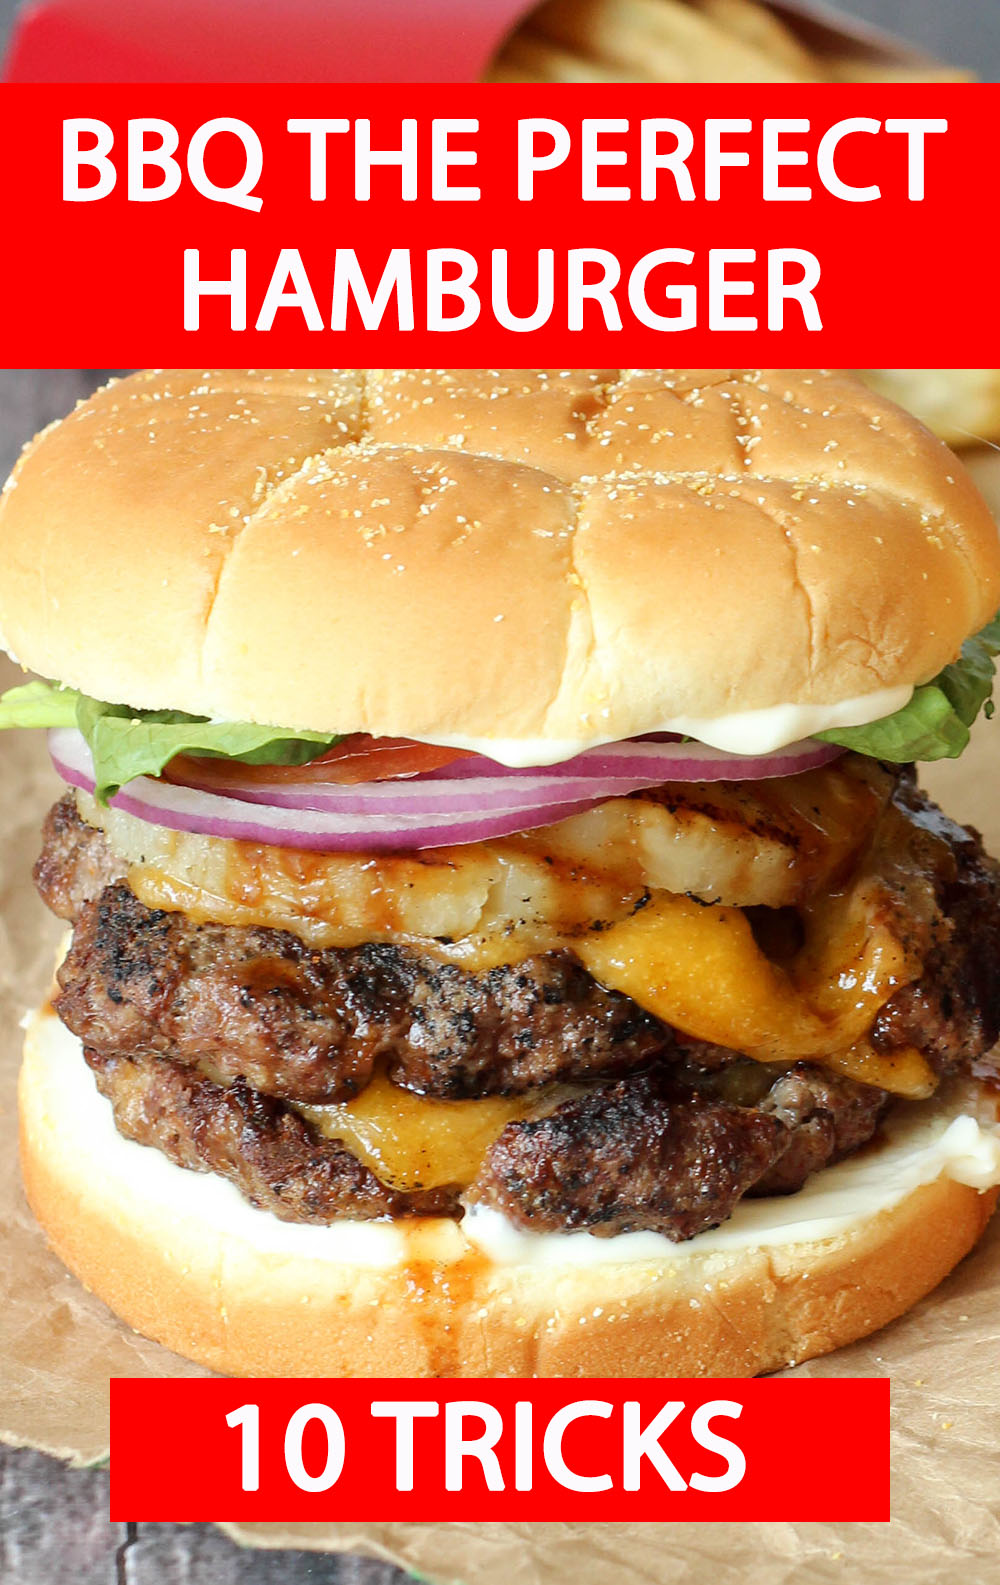 Solve all your burger grilling problems! These easy tips for flavorful, juicy, hamburgers will make you a grilling legend. My easy trick to make perfect patties will amaze you!